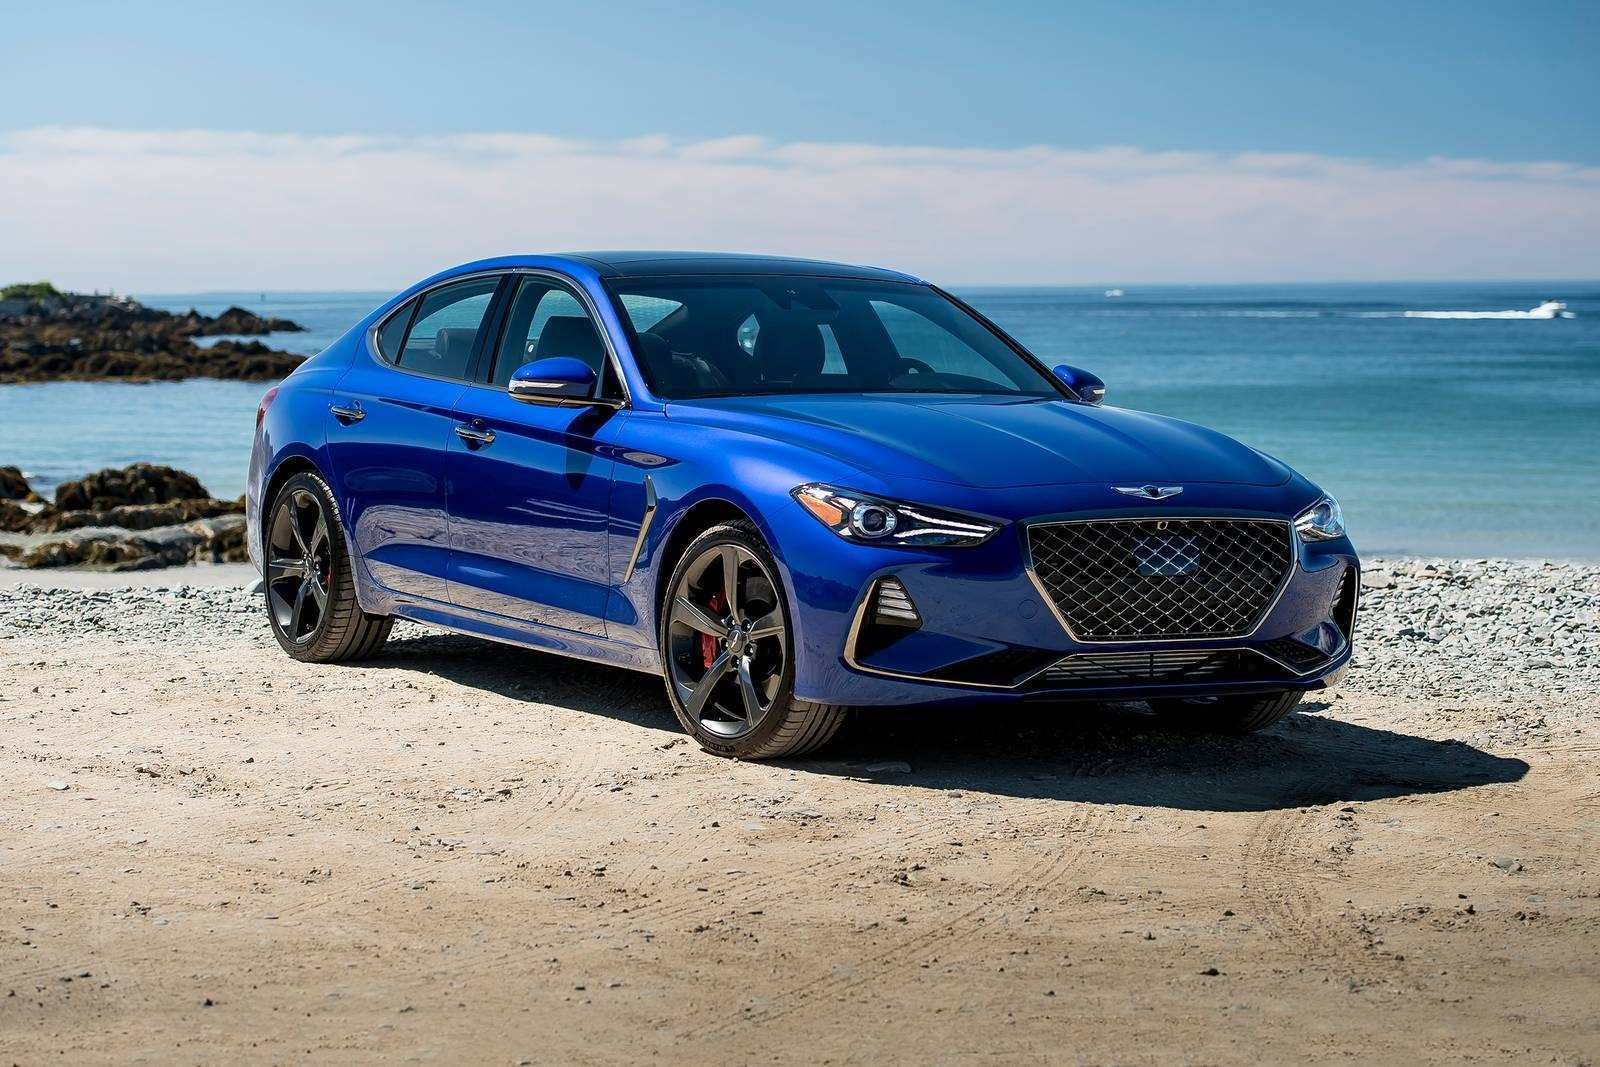 33 New 2019 Genesis Cars Prices for 2019 Genesis Cars